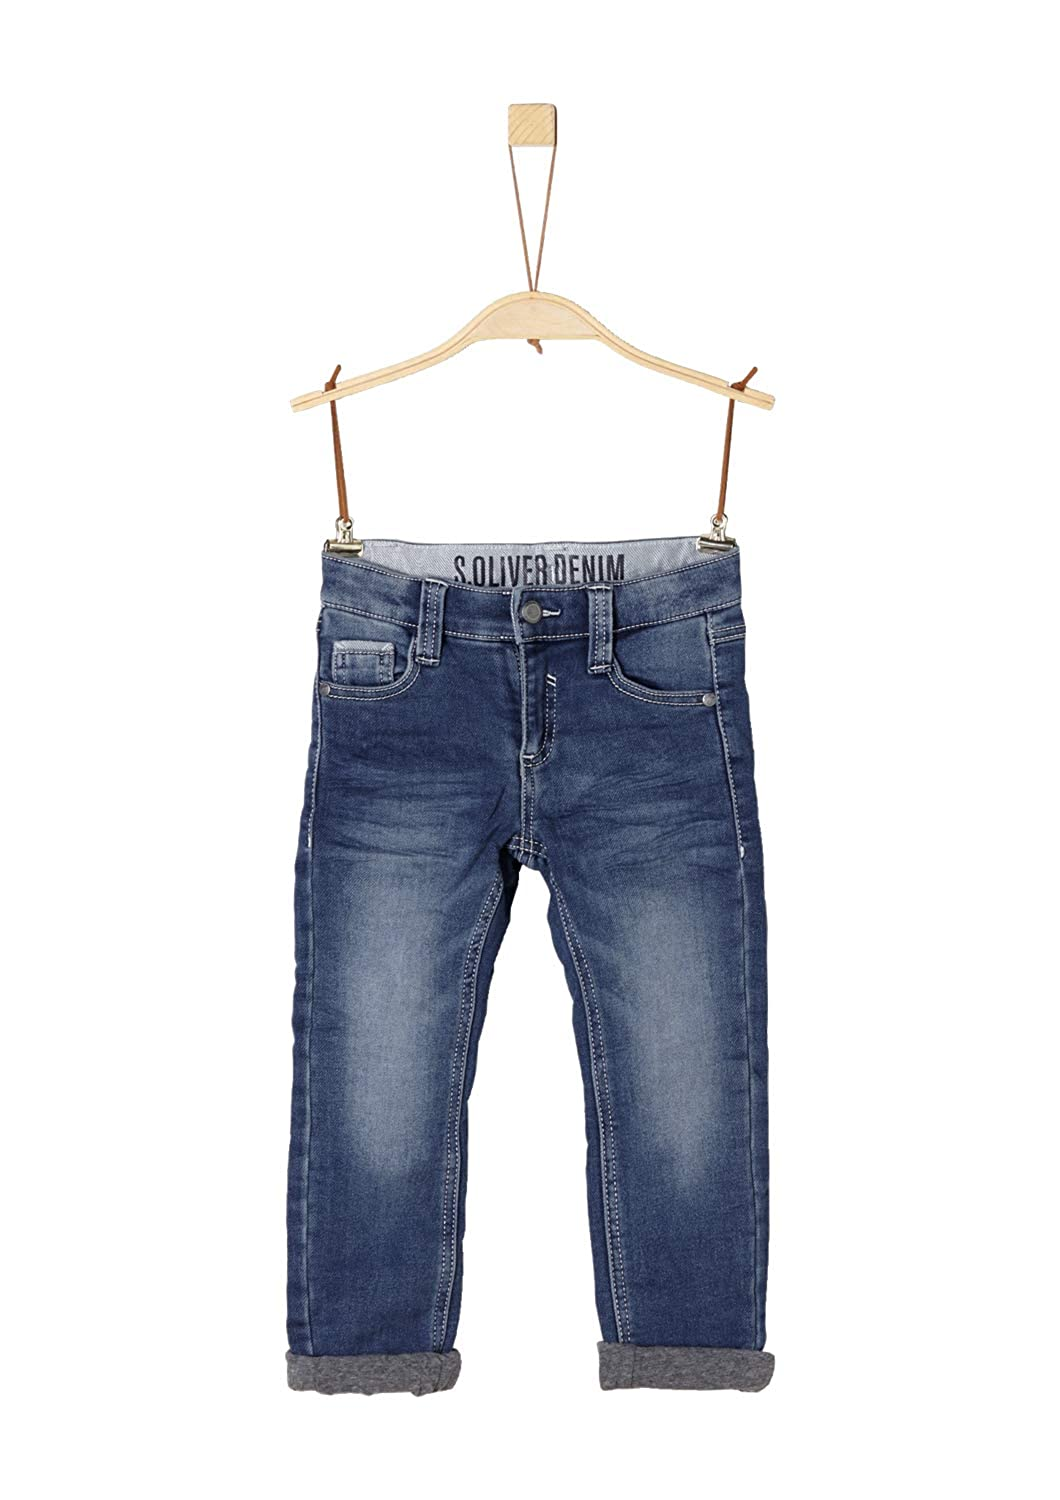 s.Oliver Jeans Bambino s.Oliver Junior 63.810.71.3254